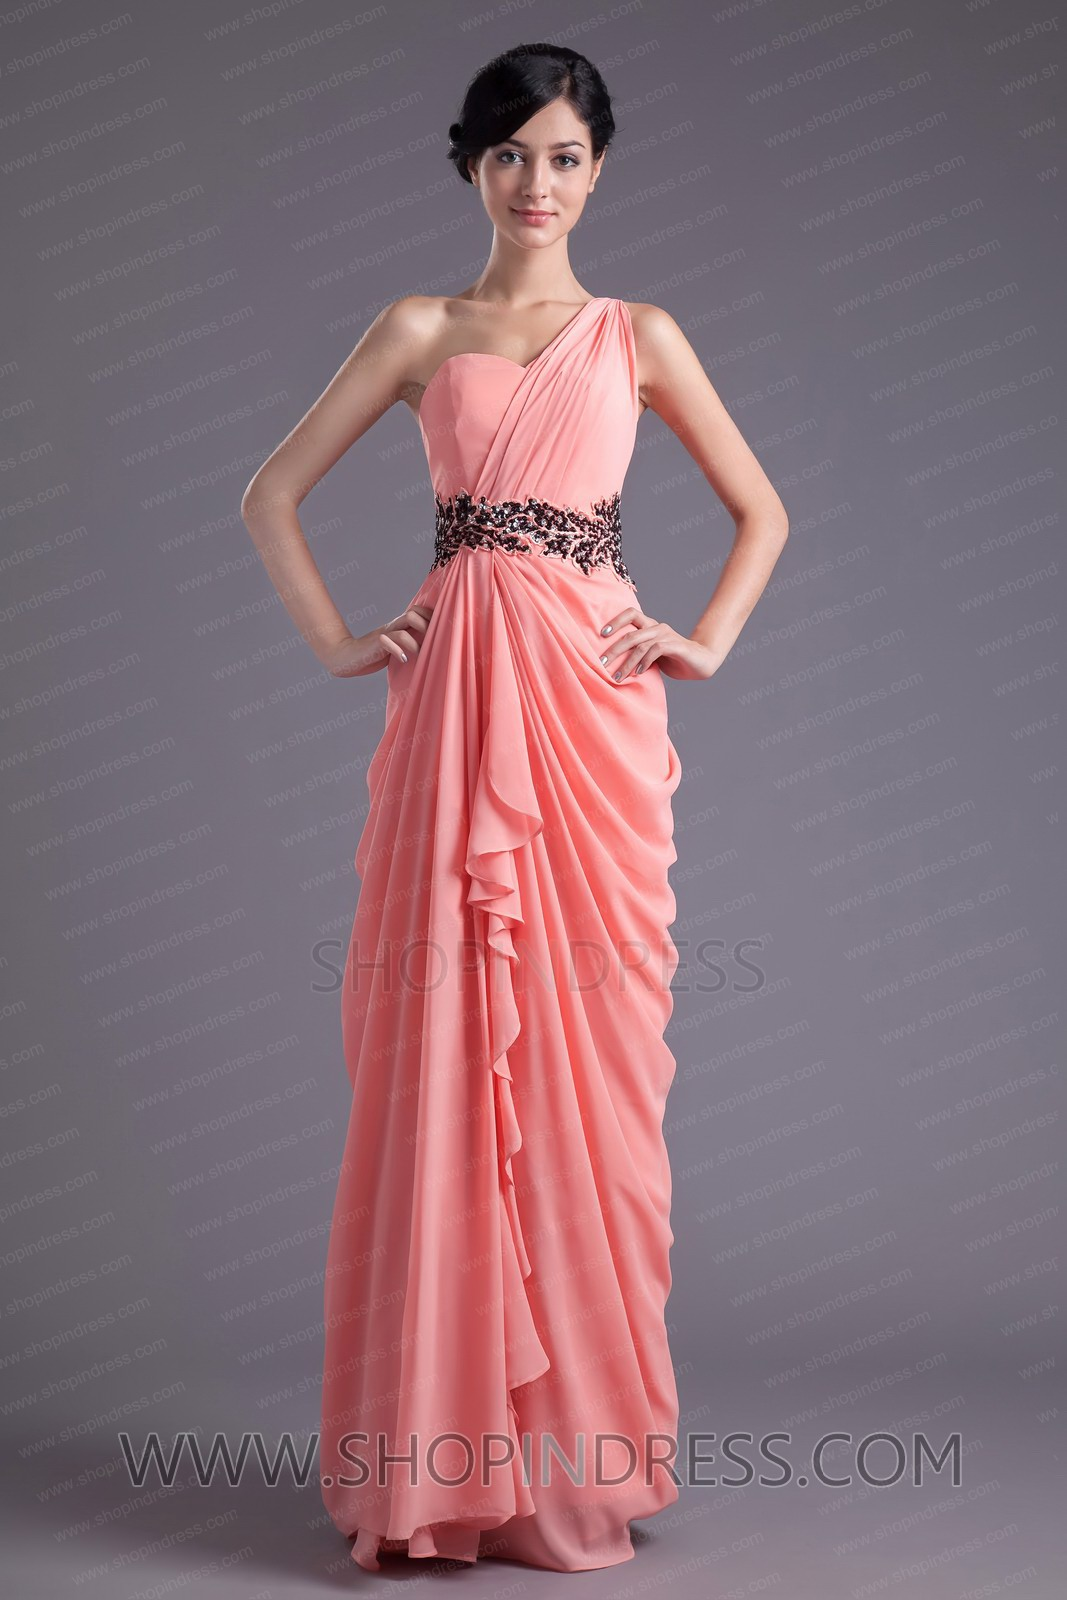 Line one shoulder floor length chiffon pink prom dress with embroidery tskn049 sale at shopindress.com